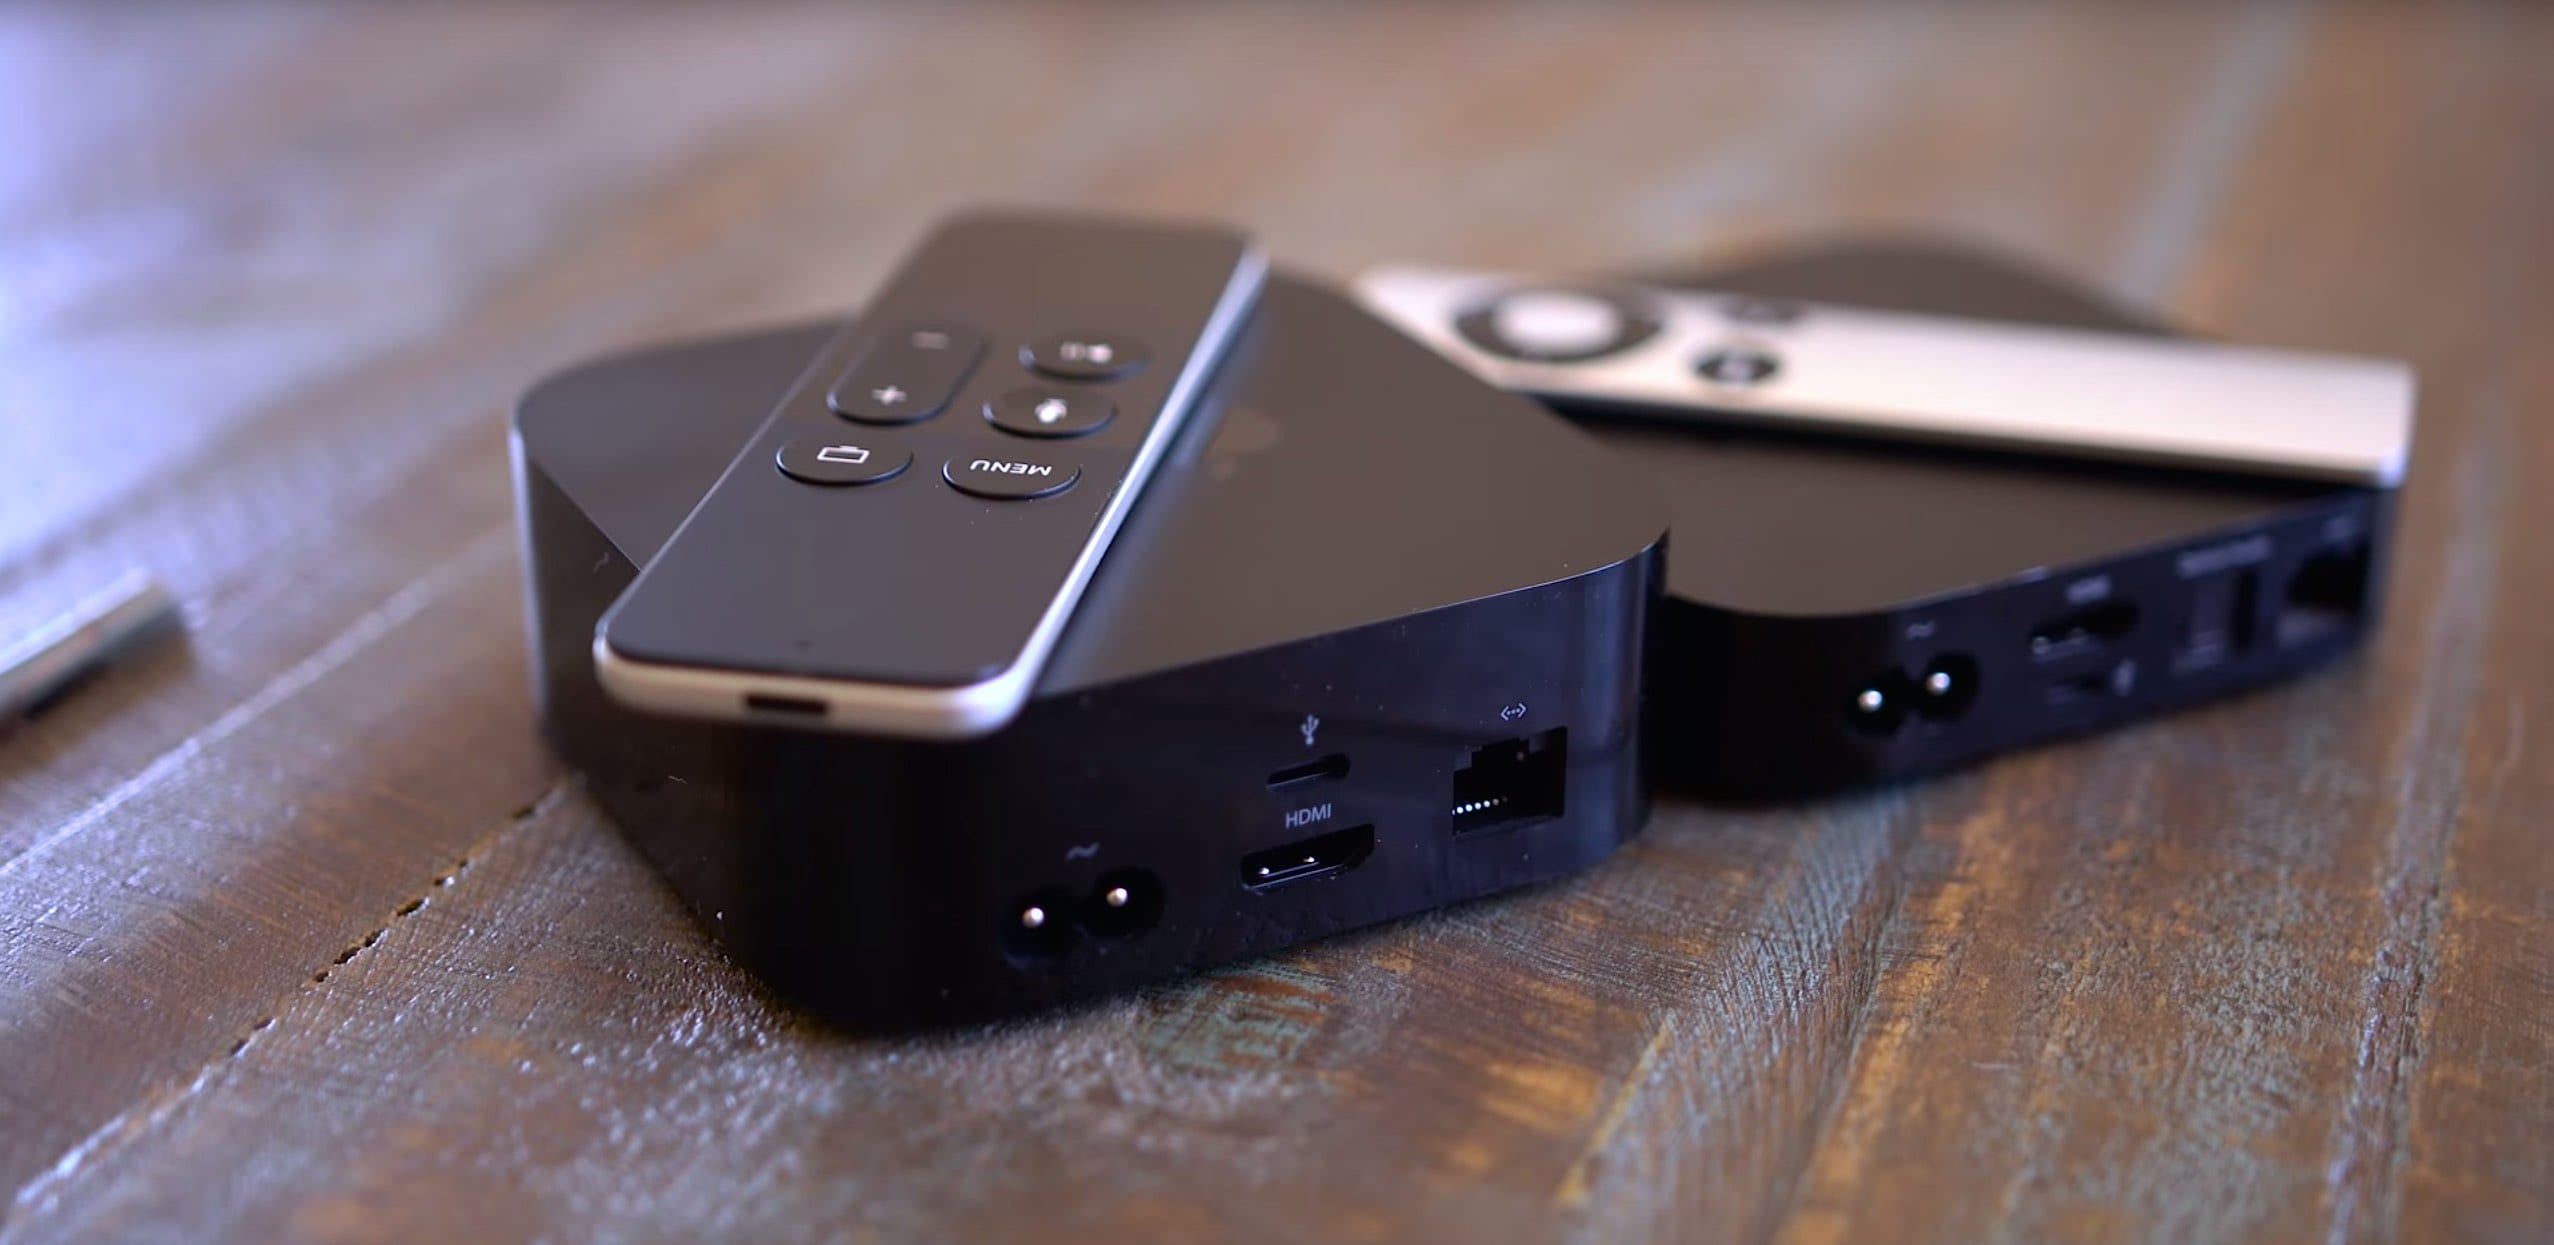 How-To enable or disable VoiceOver on Apple TV - AppleToolBox